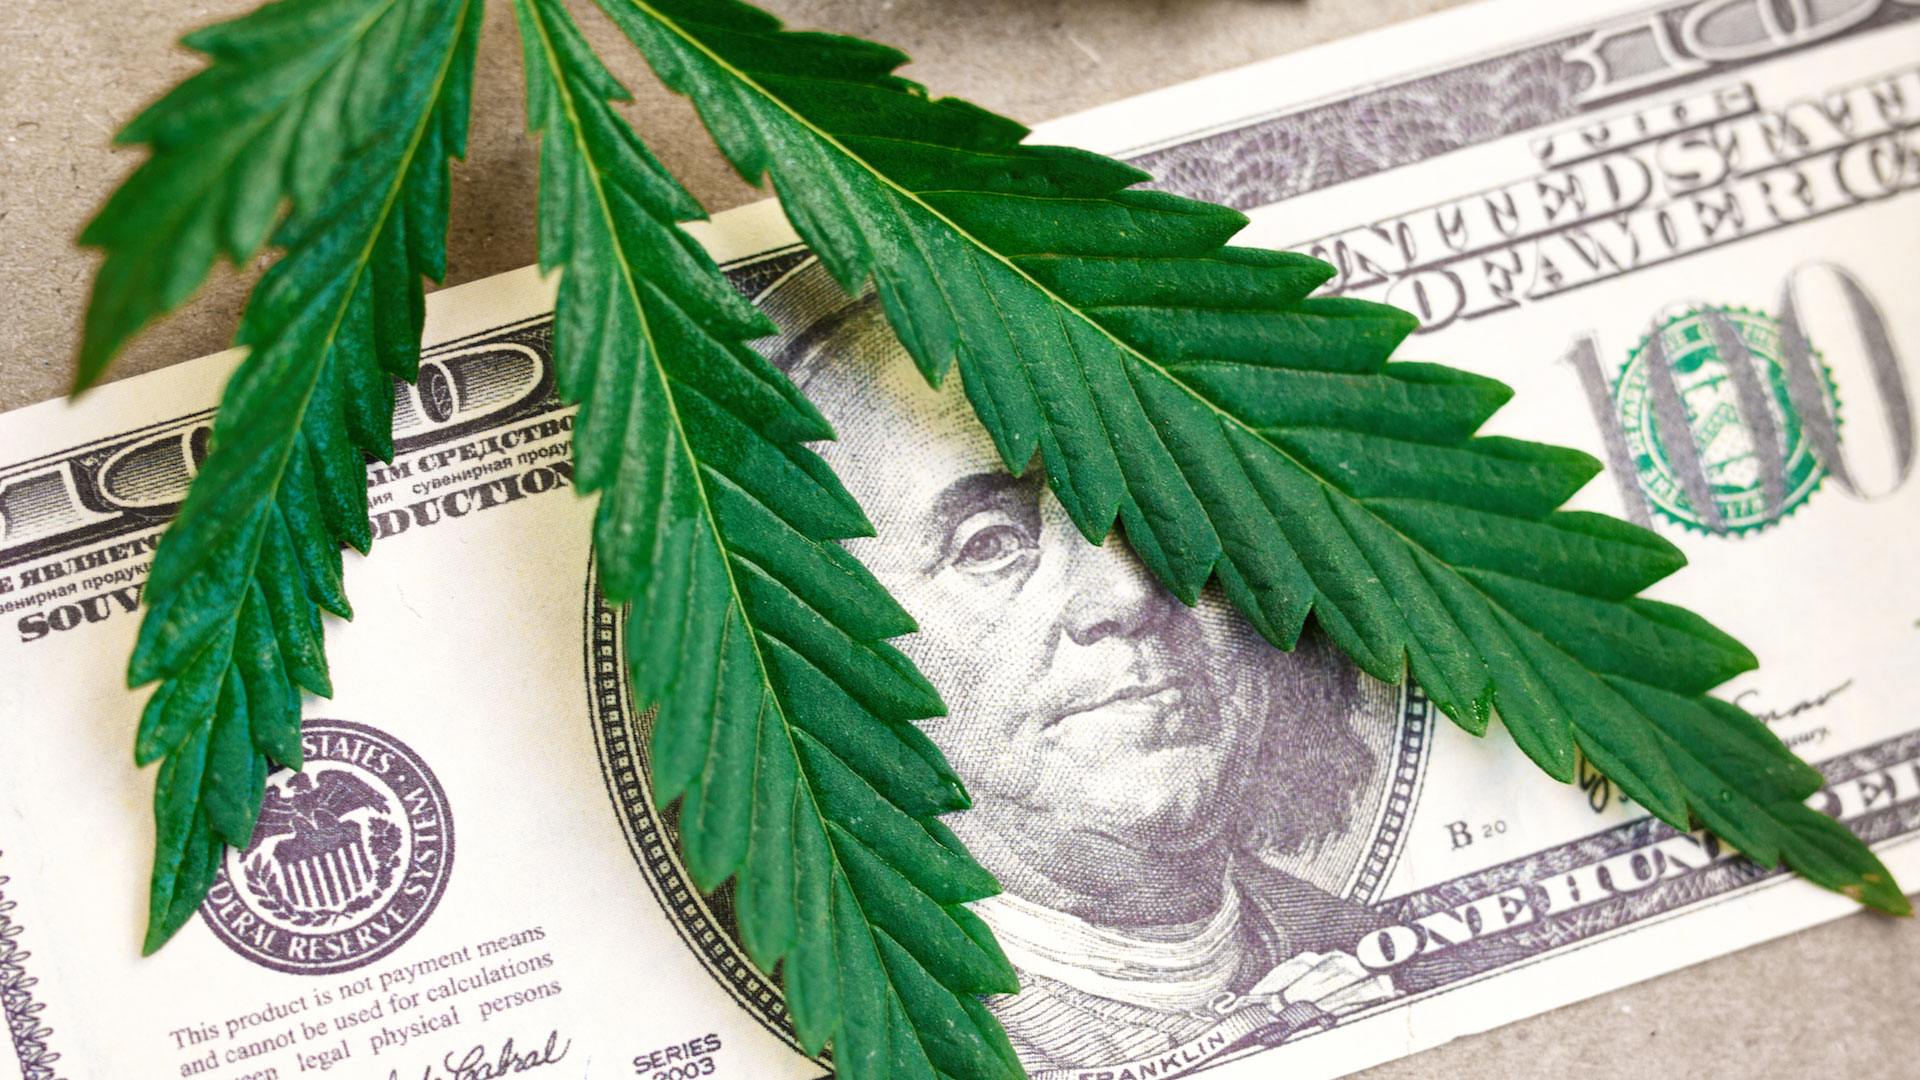 The most expensive strains of cannabis